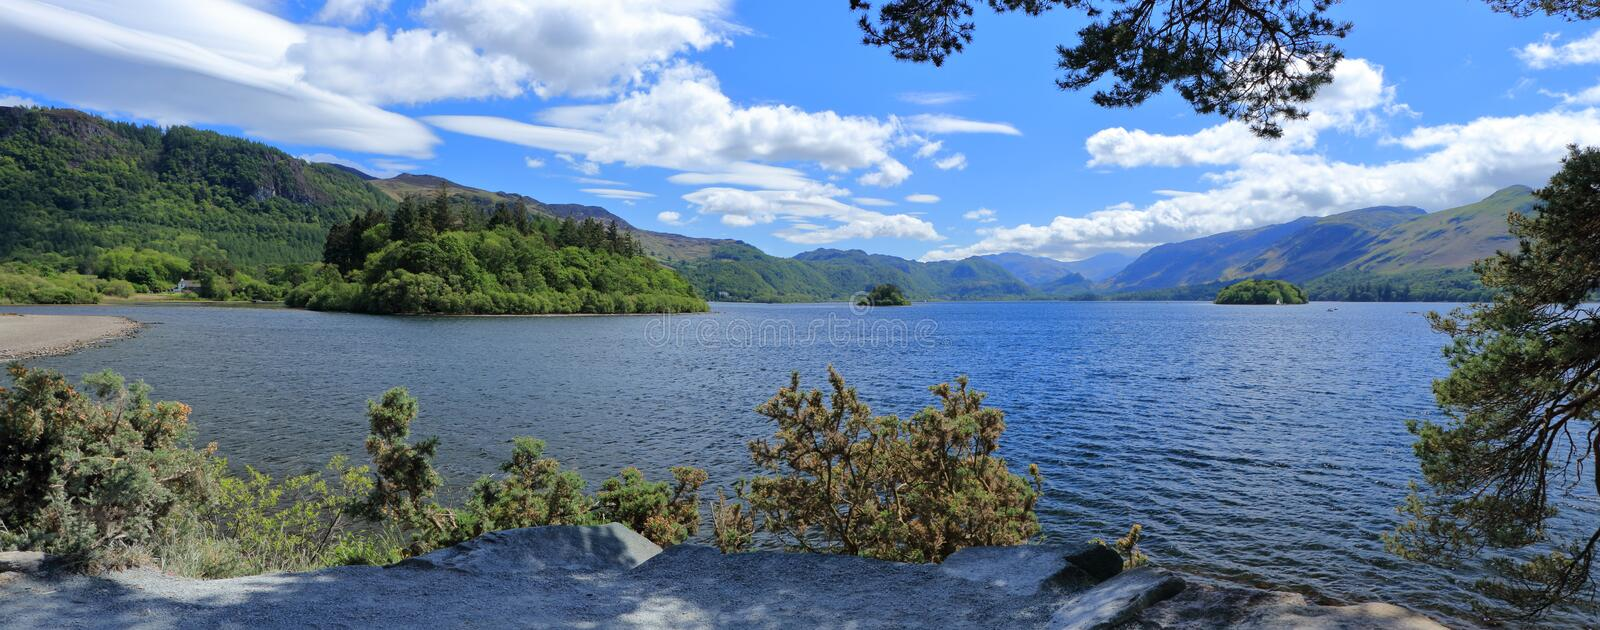 Panorama of Derwentwater near Keswick from Friars Crag with Islands and Mountain Views, Lake District National Park, Cumbria. The landscape panorama from Friars stock photos